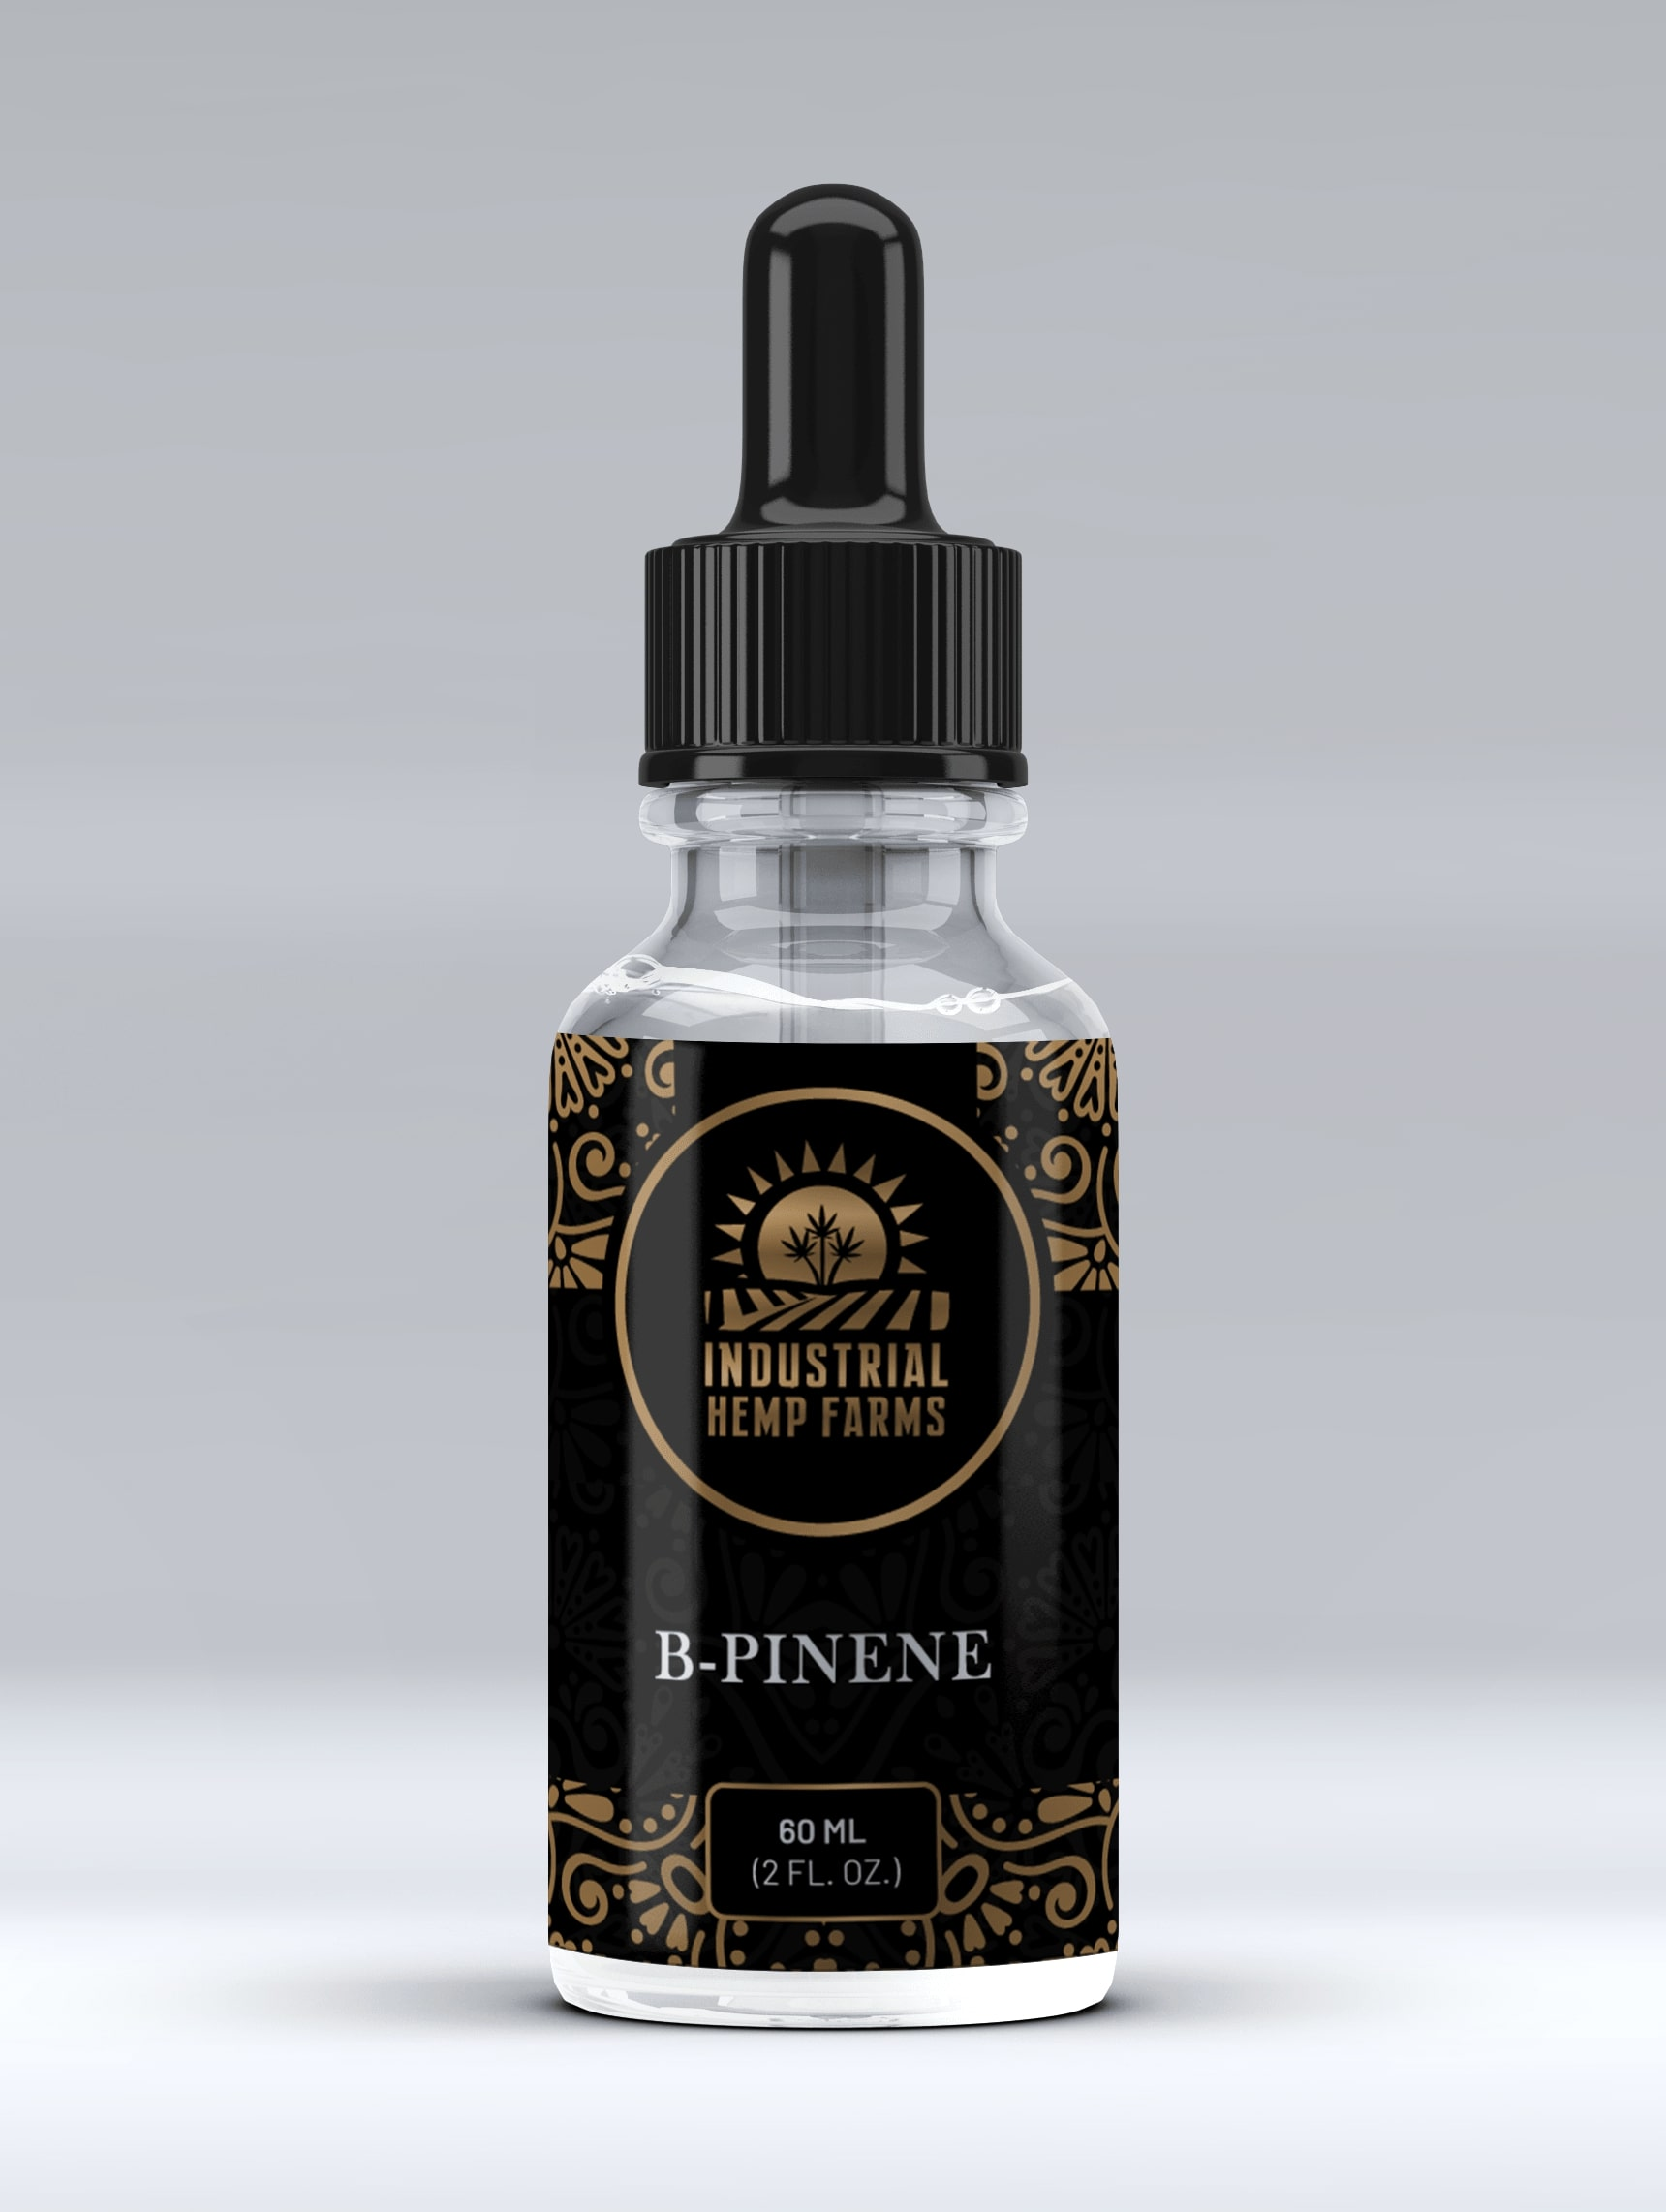 Beta pinene terpene for sale online